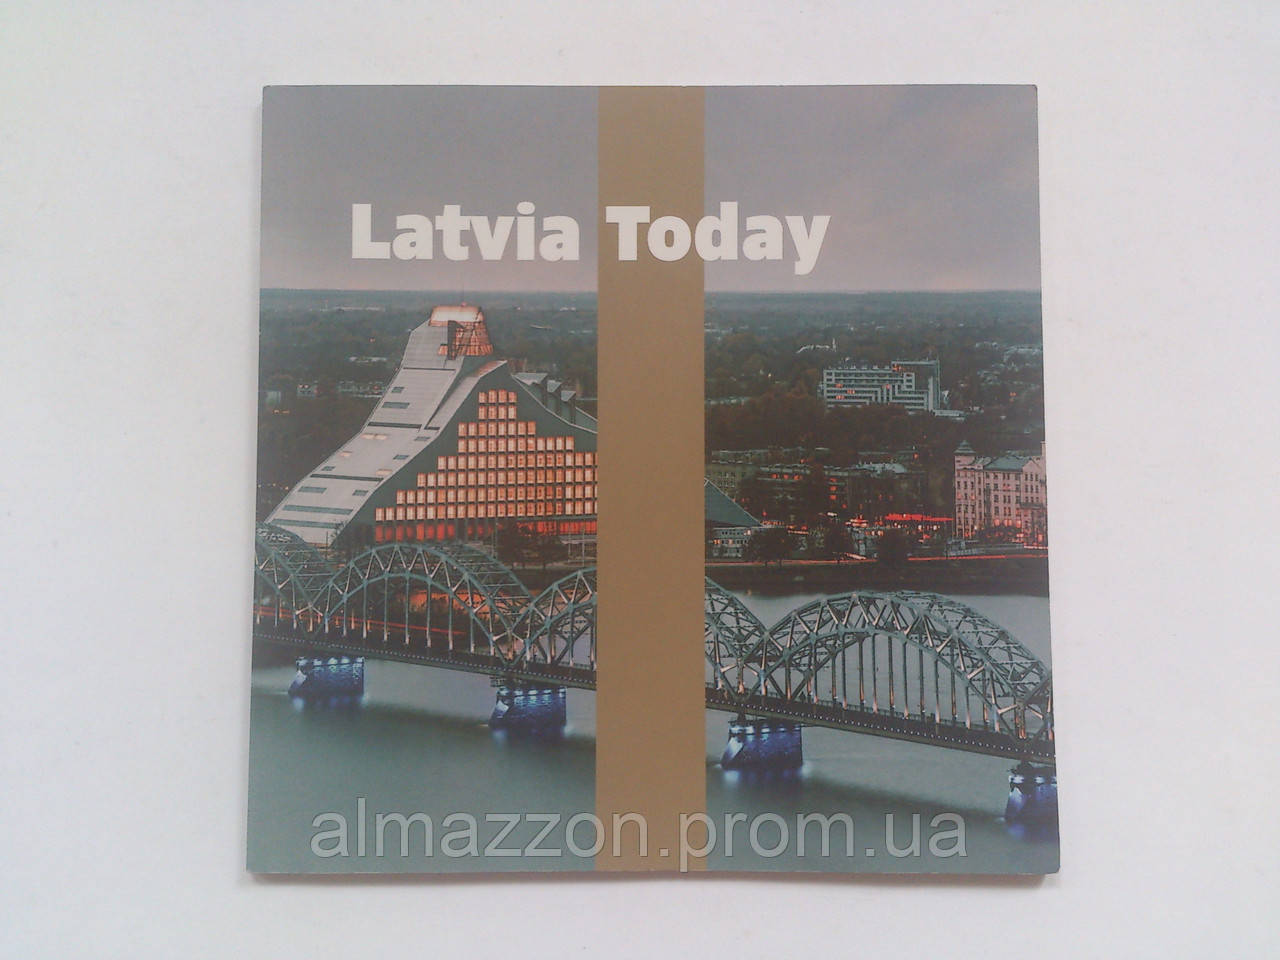 Latvia today Латвия буклет. Туризм 2014